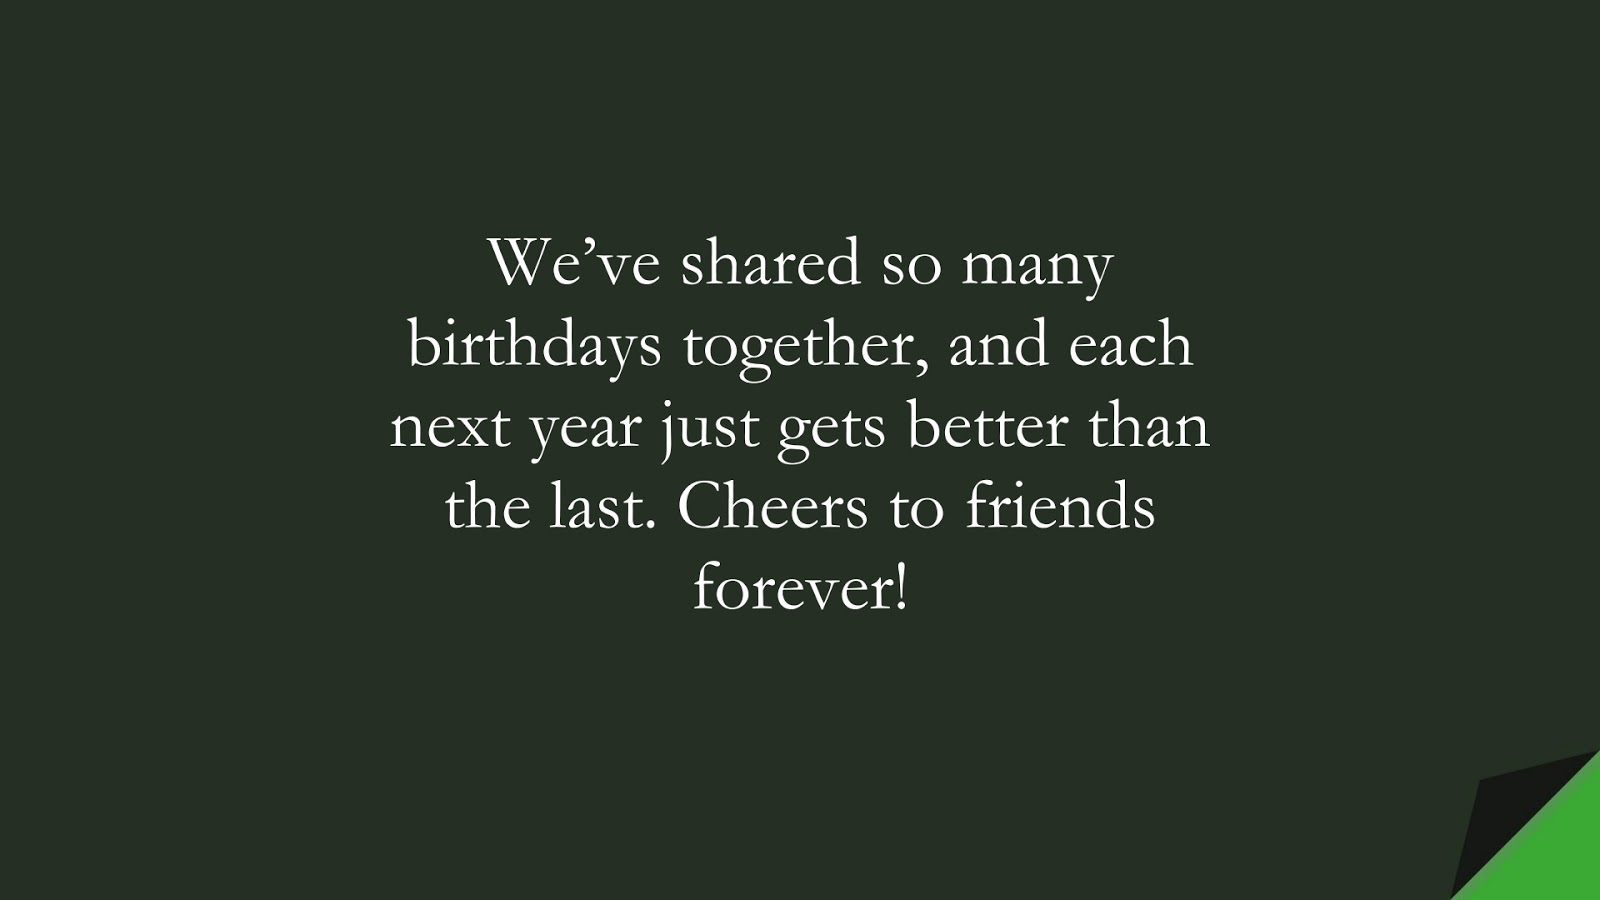 We've shared so many birthdays together, and each next year just gets better than the last. Cheers to friends forever!FALSE